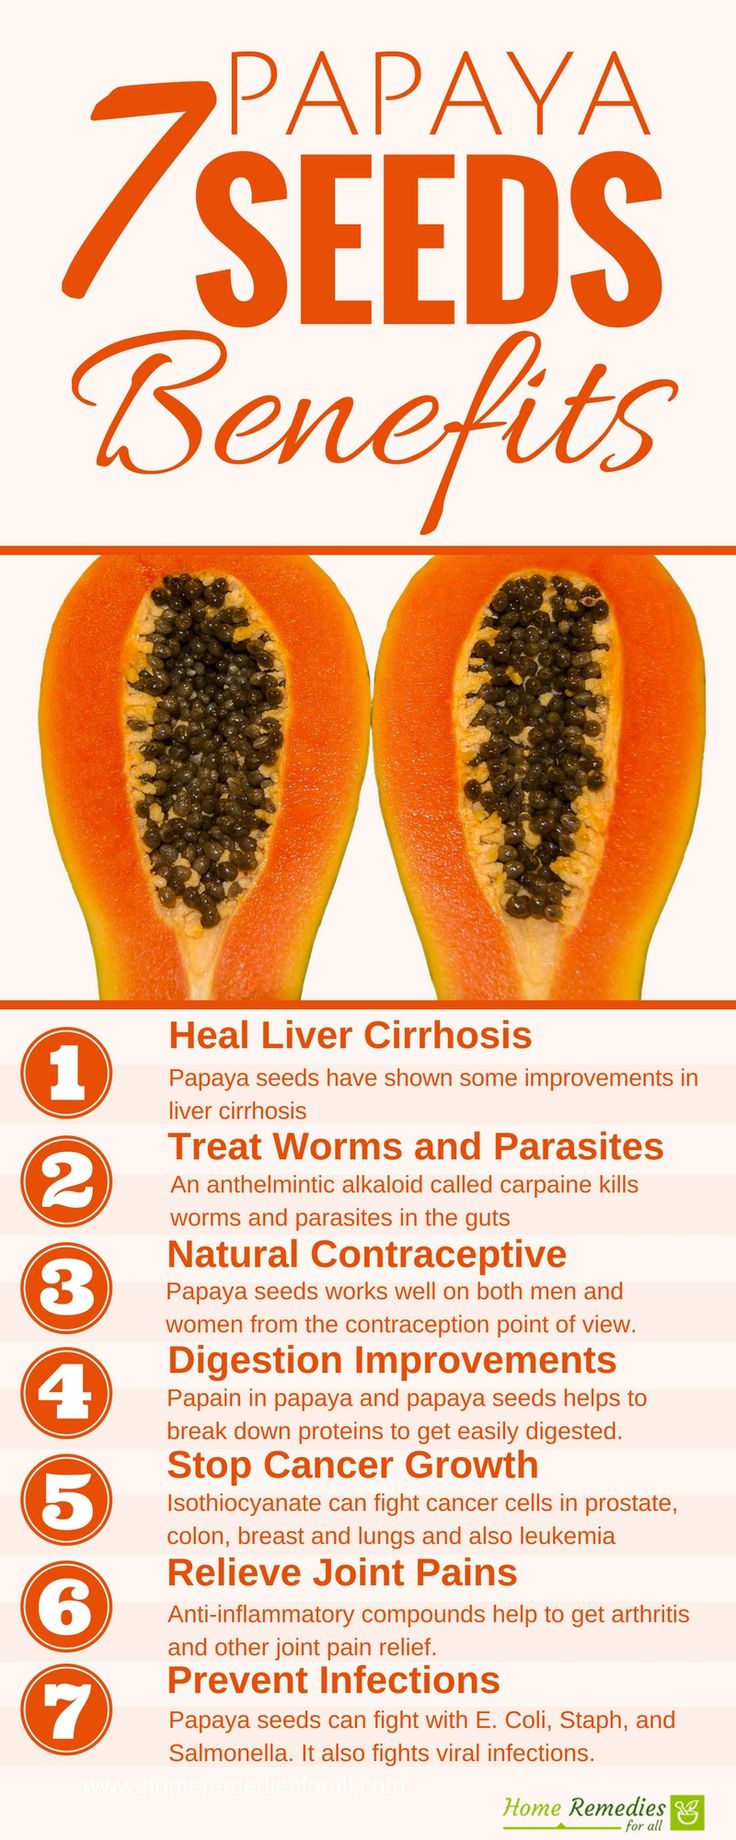 Use papaya seeds which offers multiple health benefits